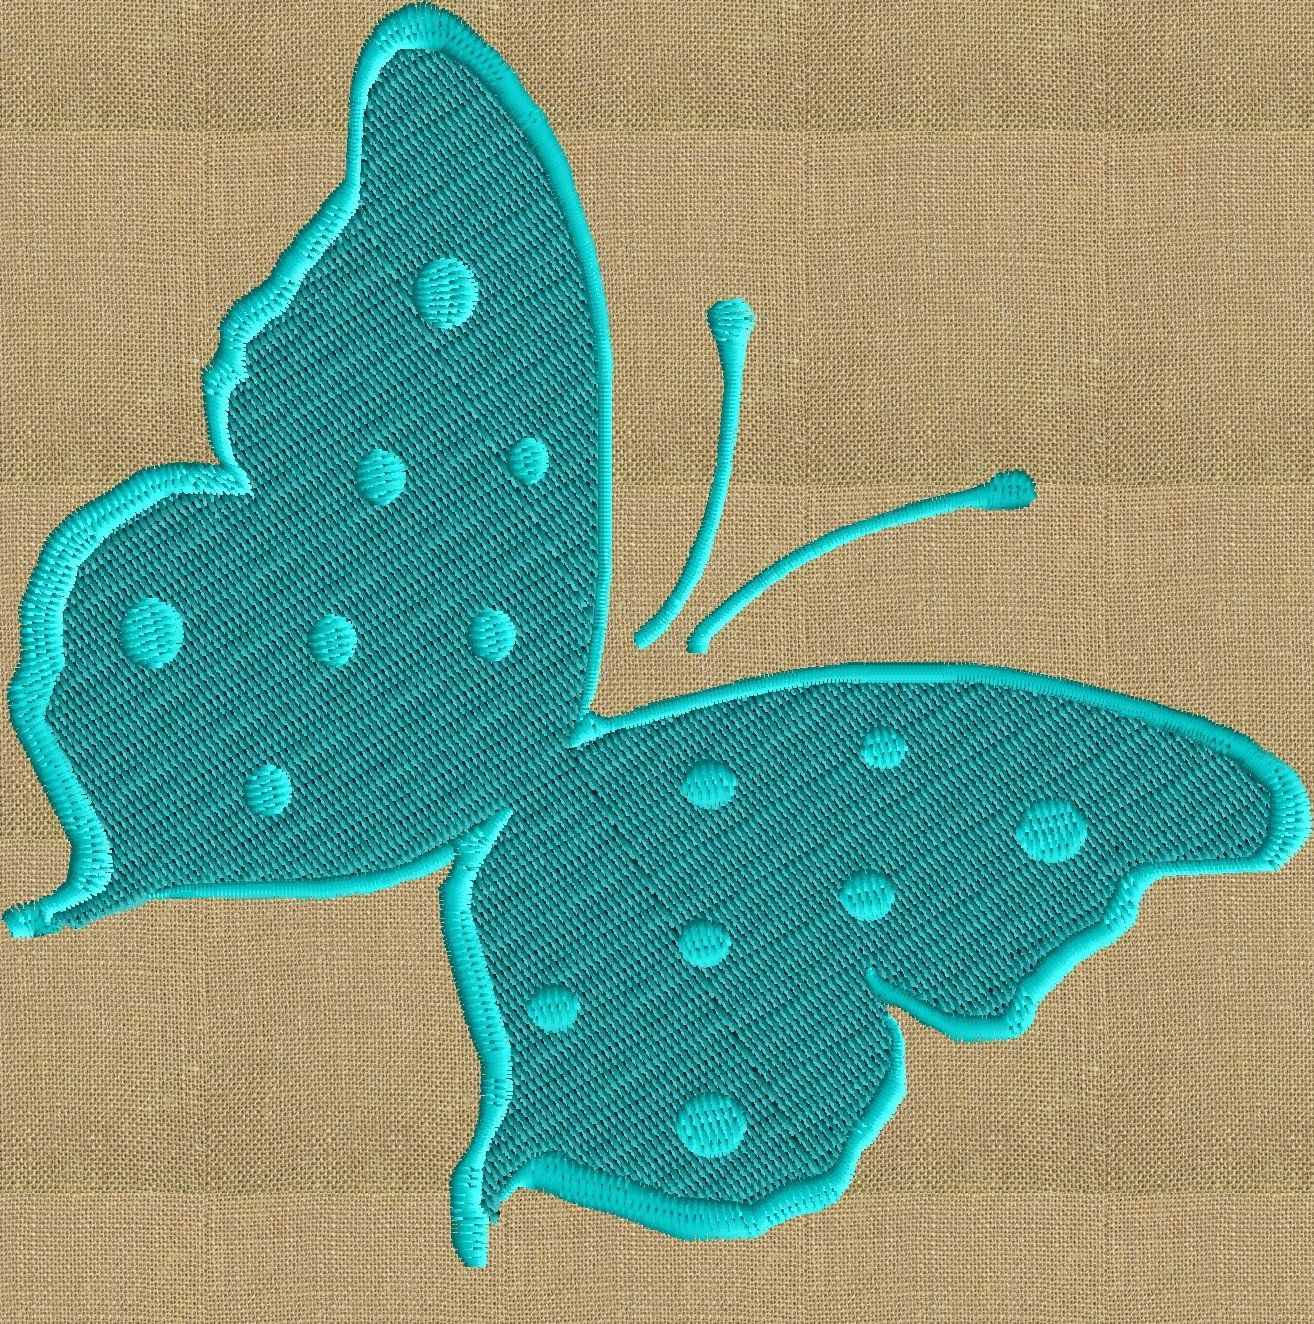 Butterfly EMBROIDERY DESIGN file Instant download Exp